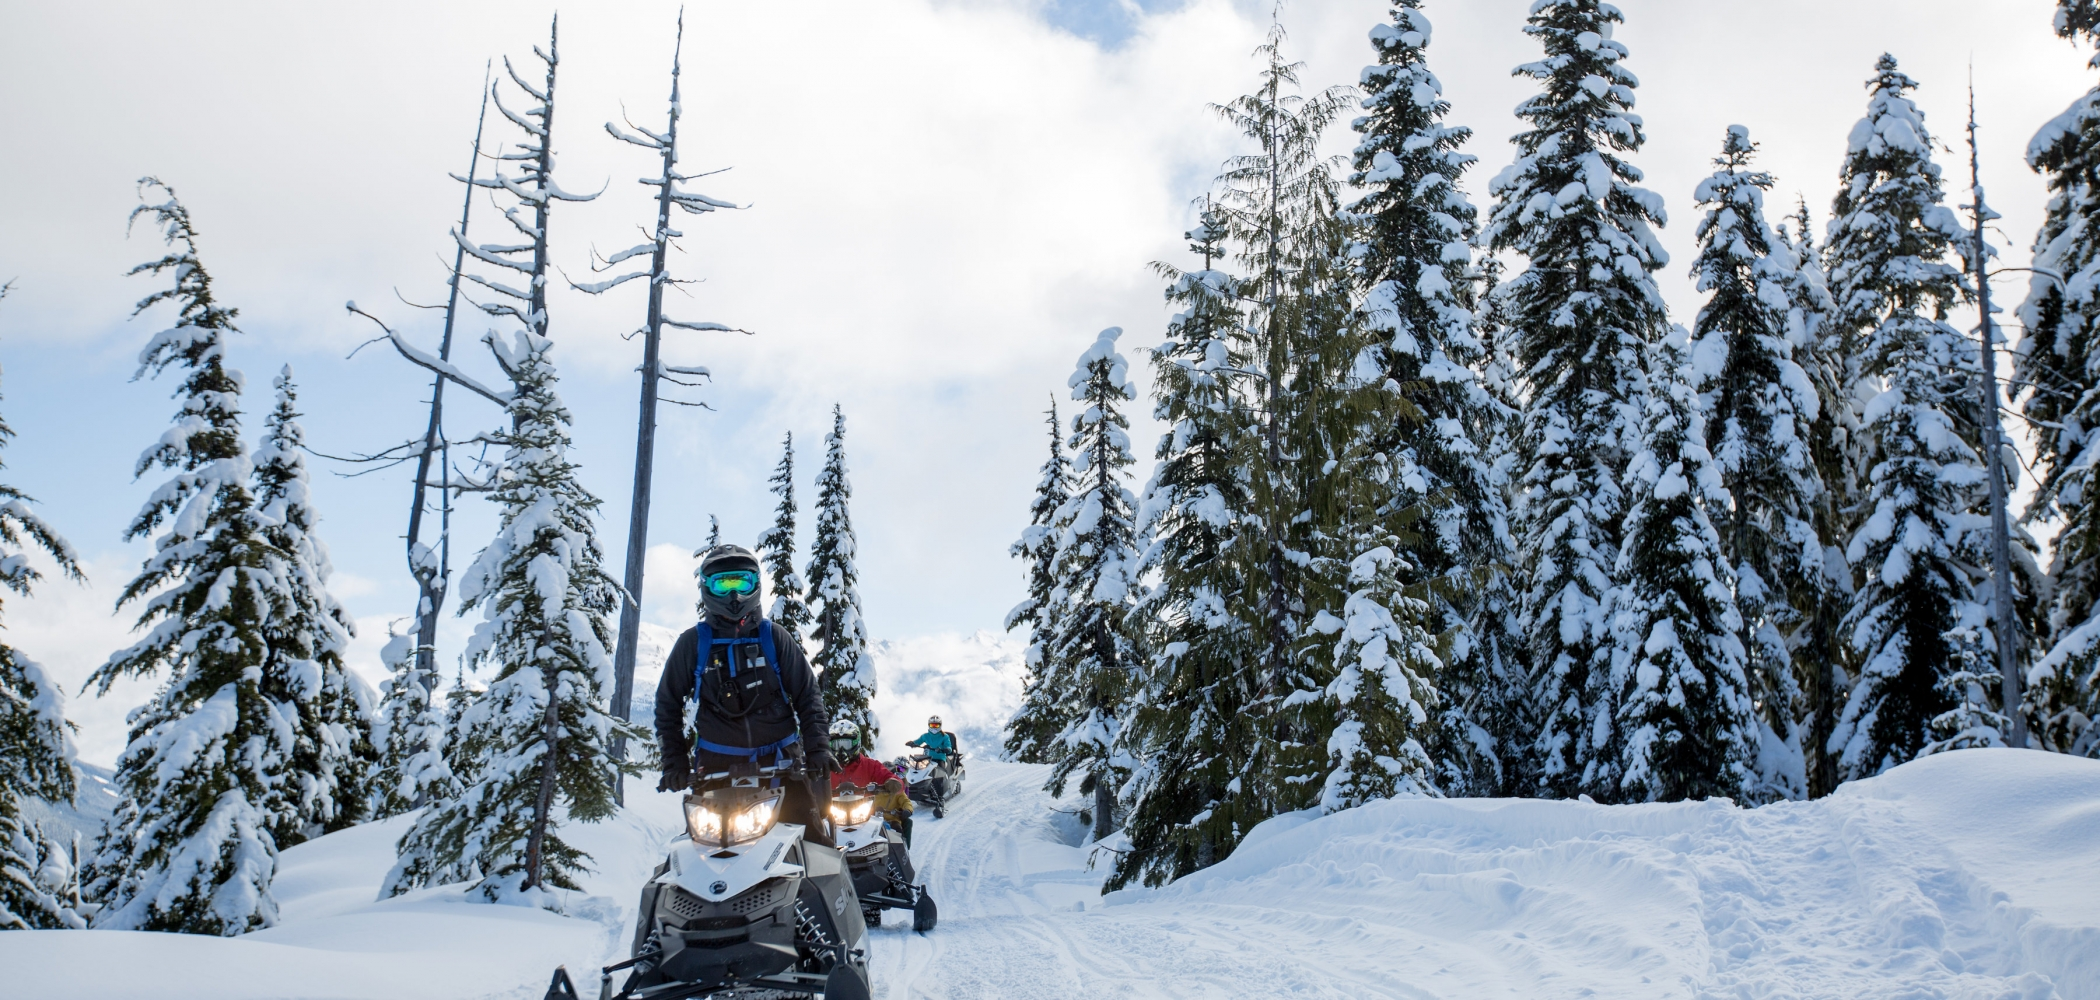 A person on a snowmobile going through the trees